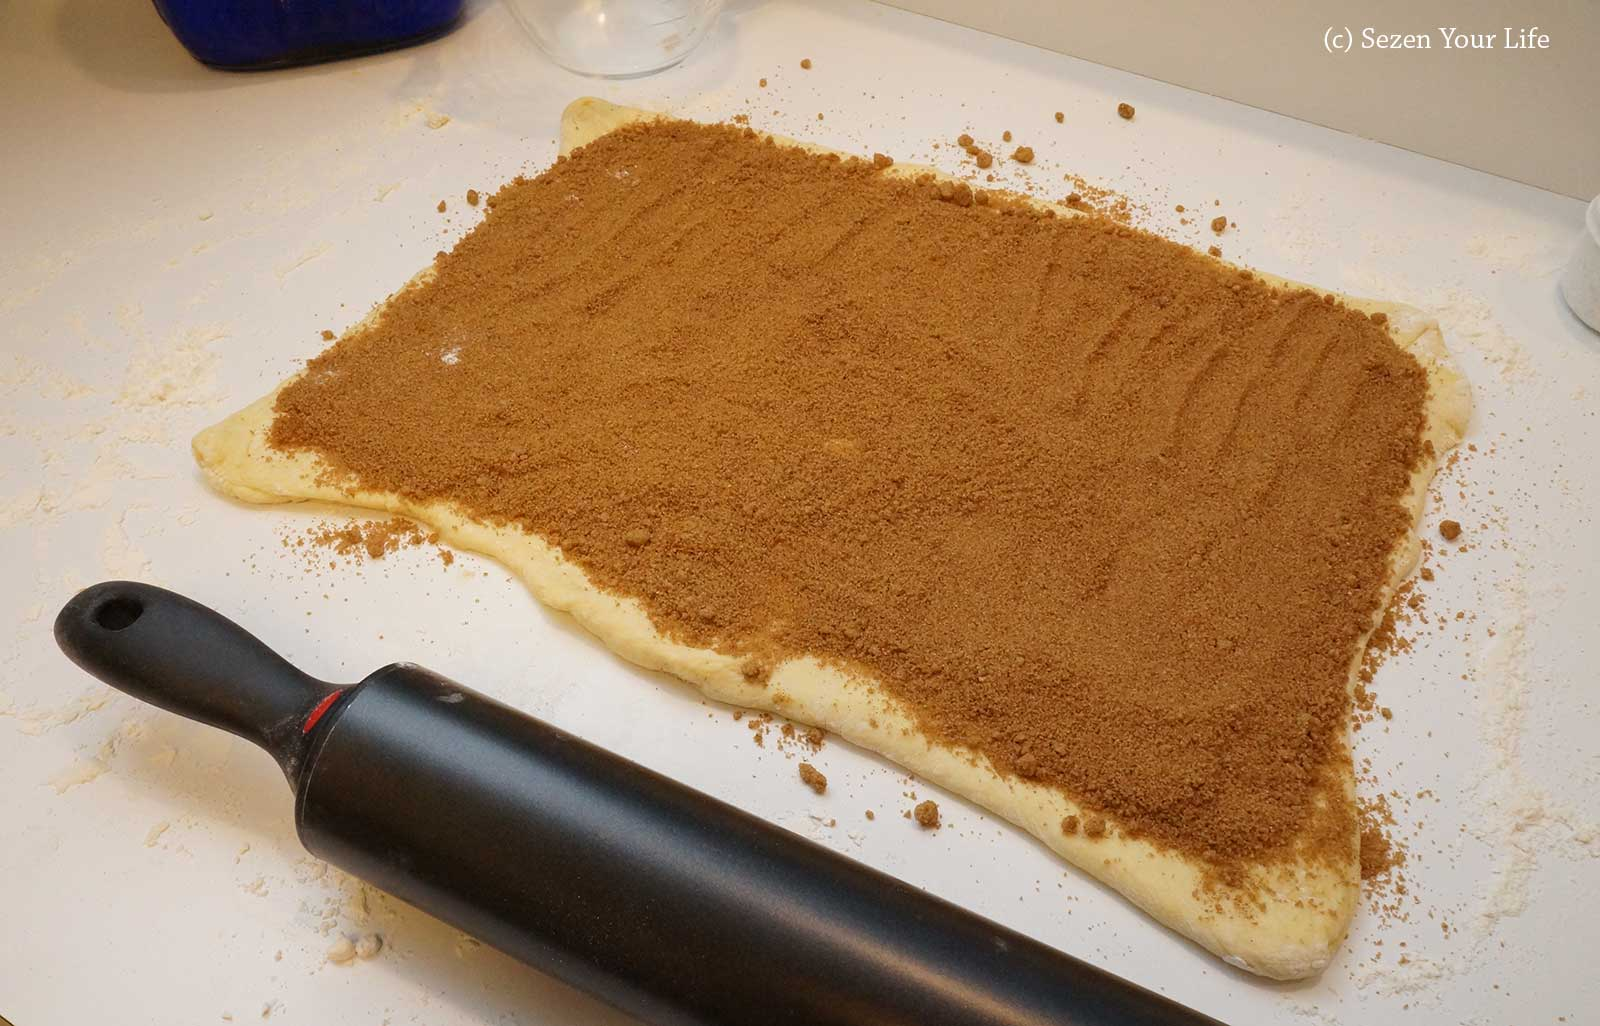 Sugar and Spice on dough for Cinnamon Rolls by Sarah Franzen